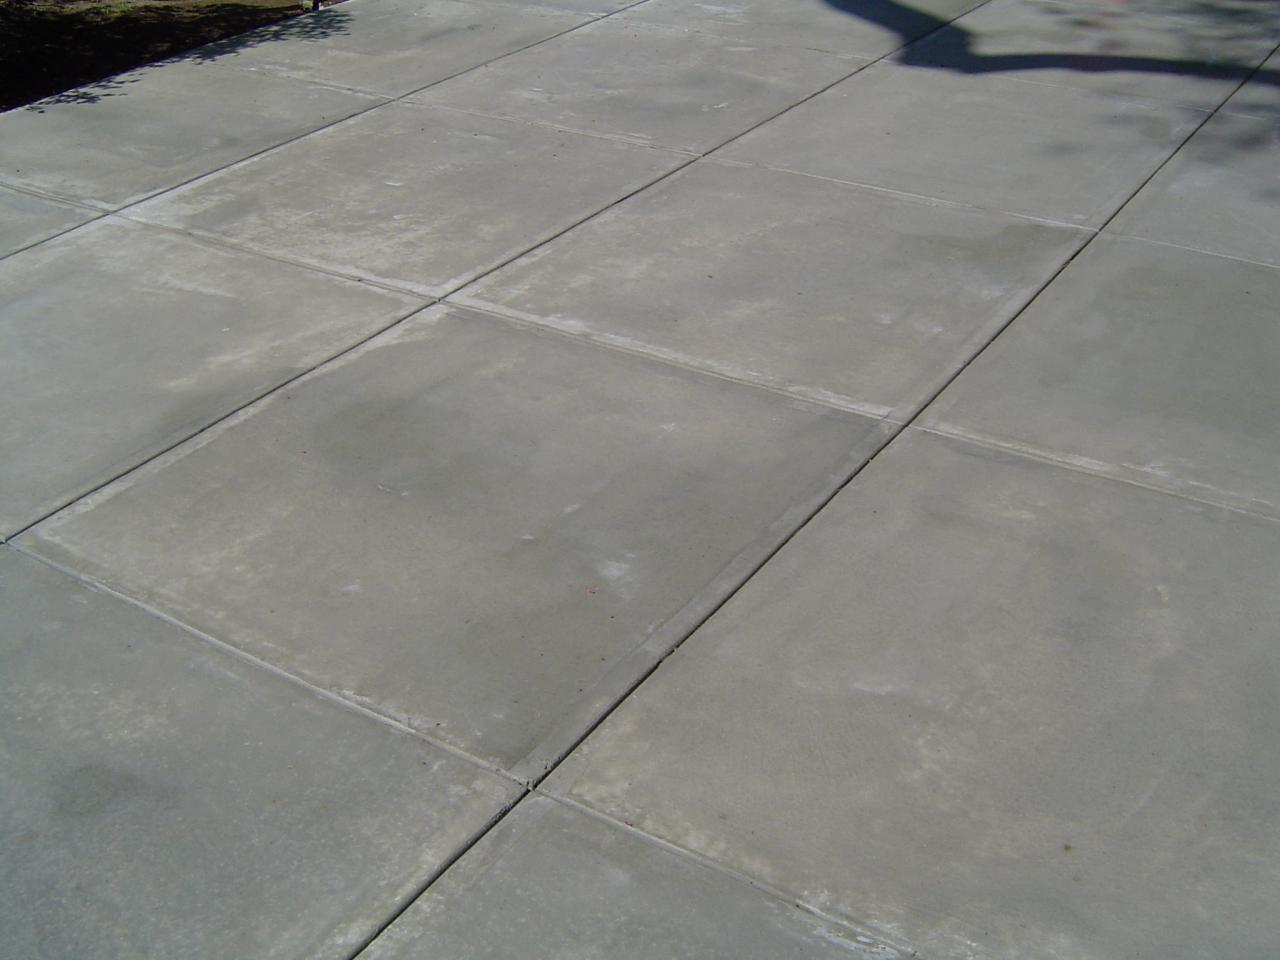 Best cleaner for concrete patio how to clean patios with for Best degreaser for concrete